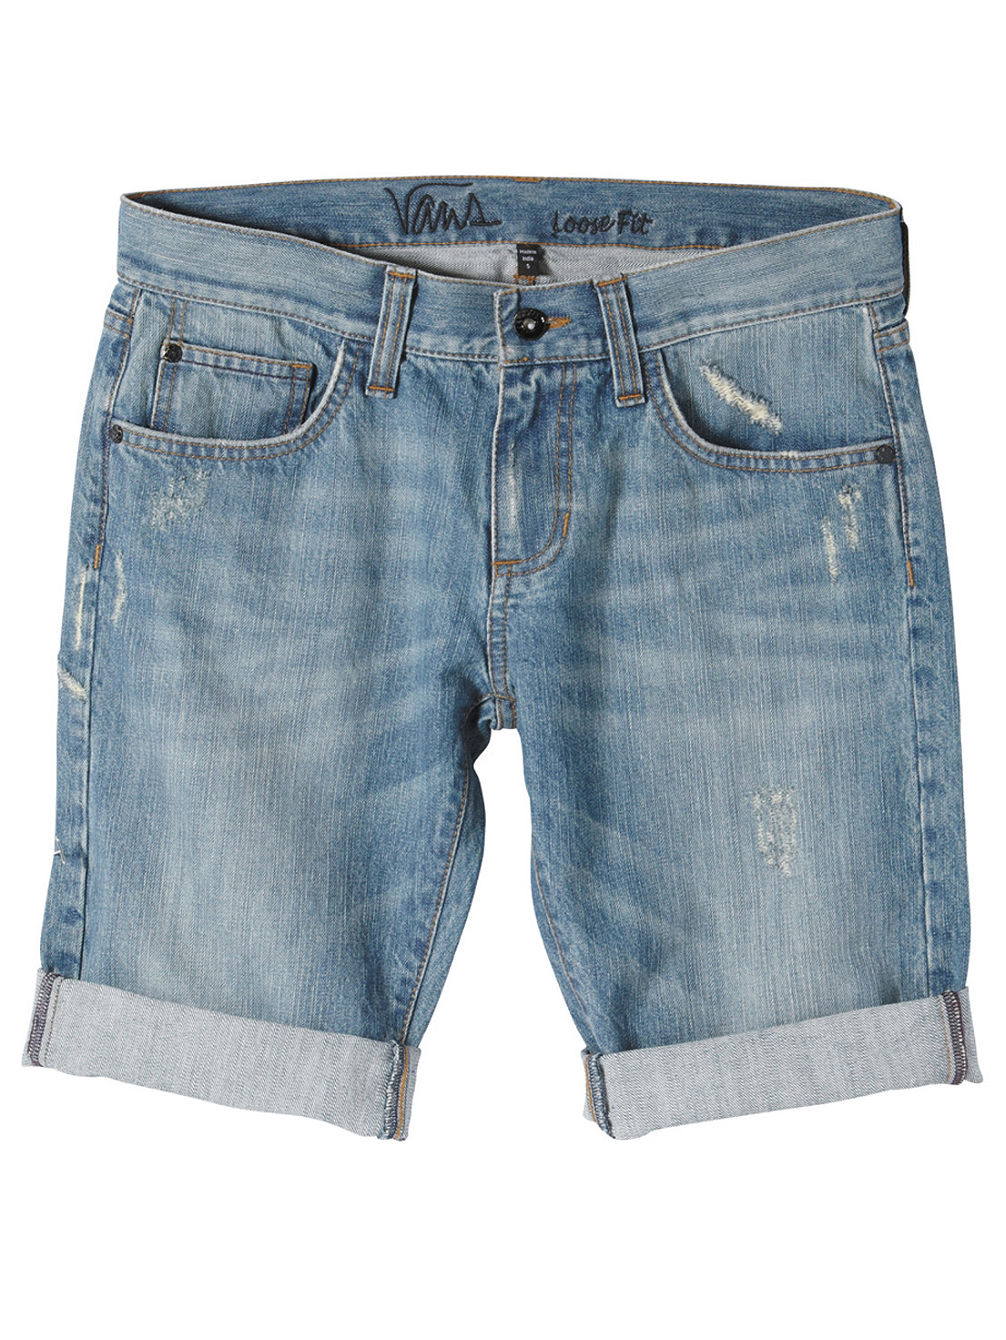 Bennie Denim Short Women